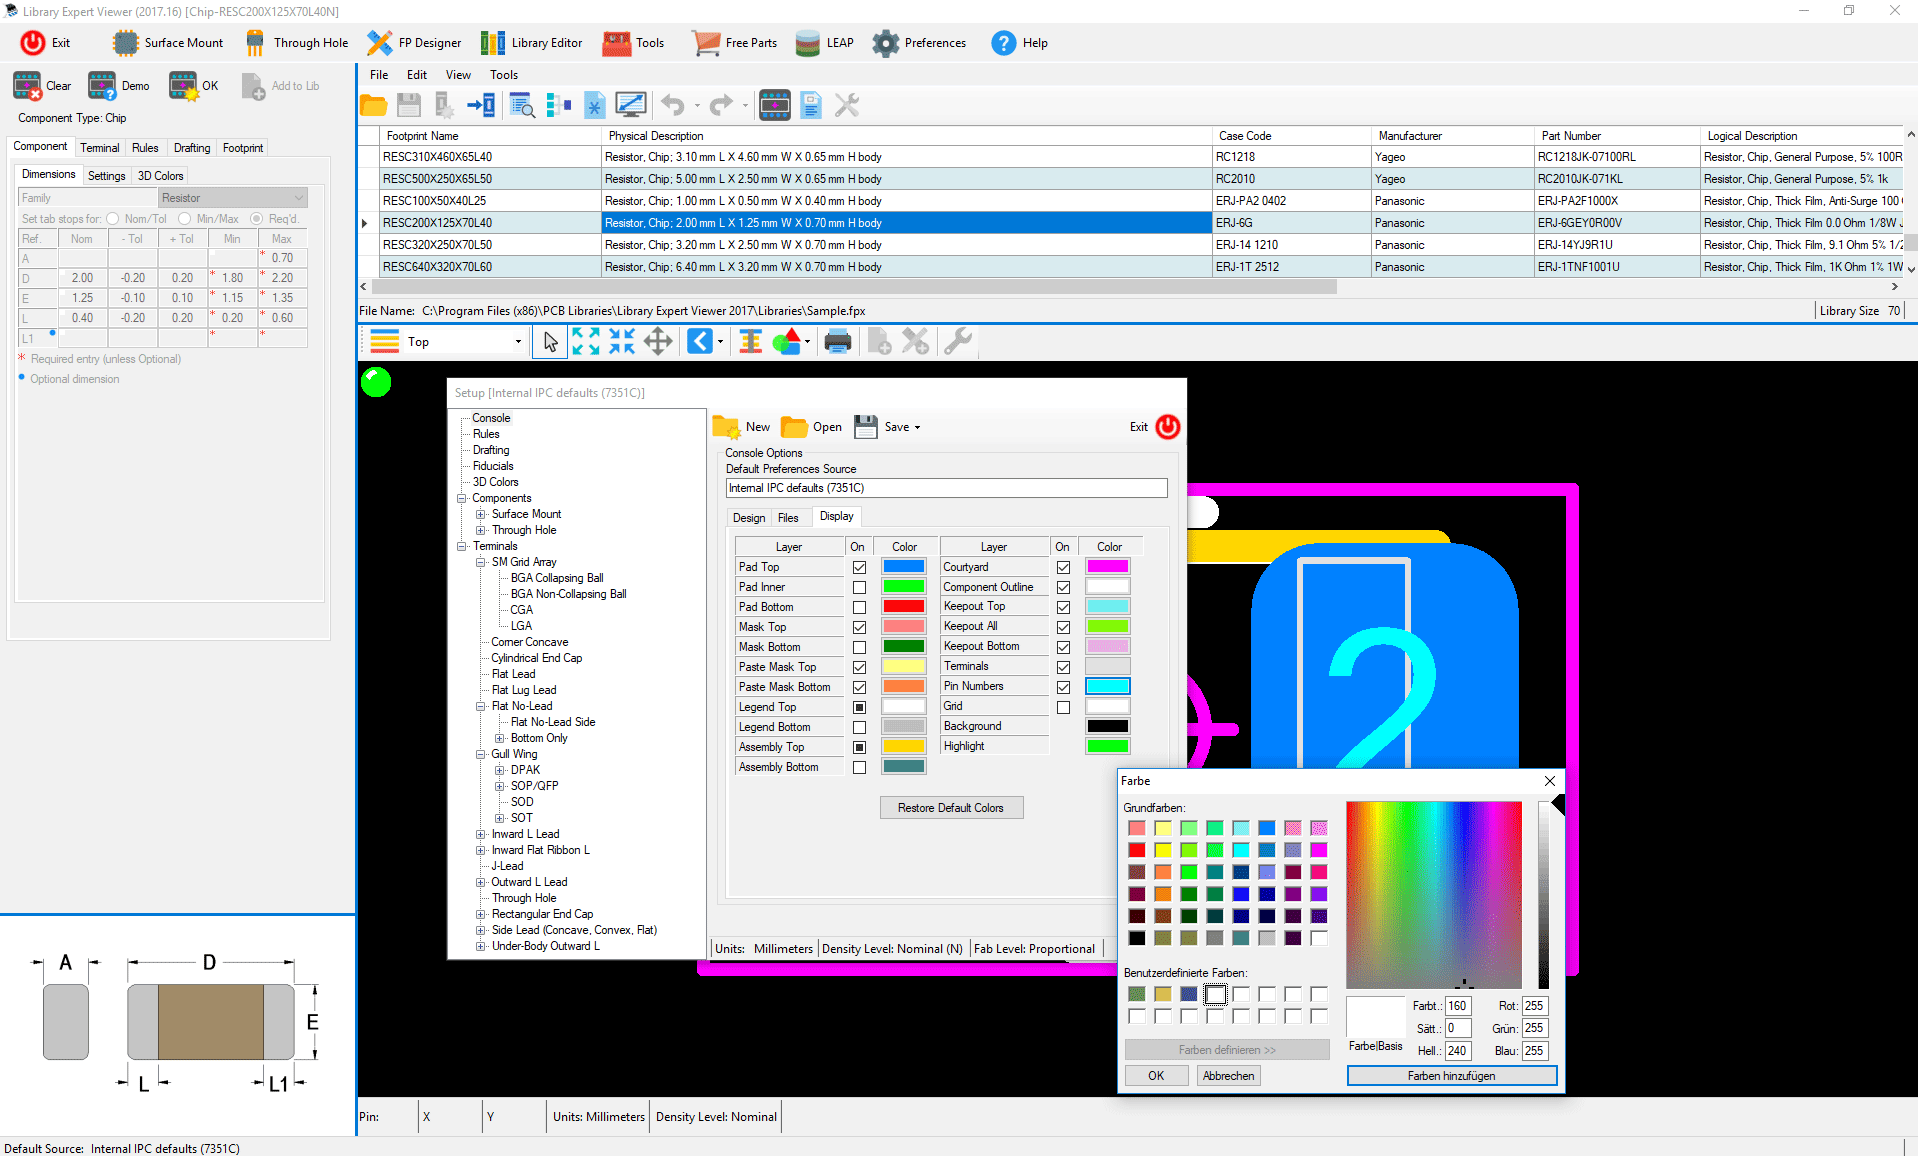 ipc  standard  pcb  library  expert  Viewer  preferences  display  colors